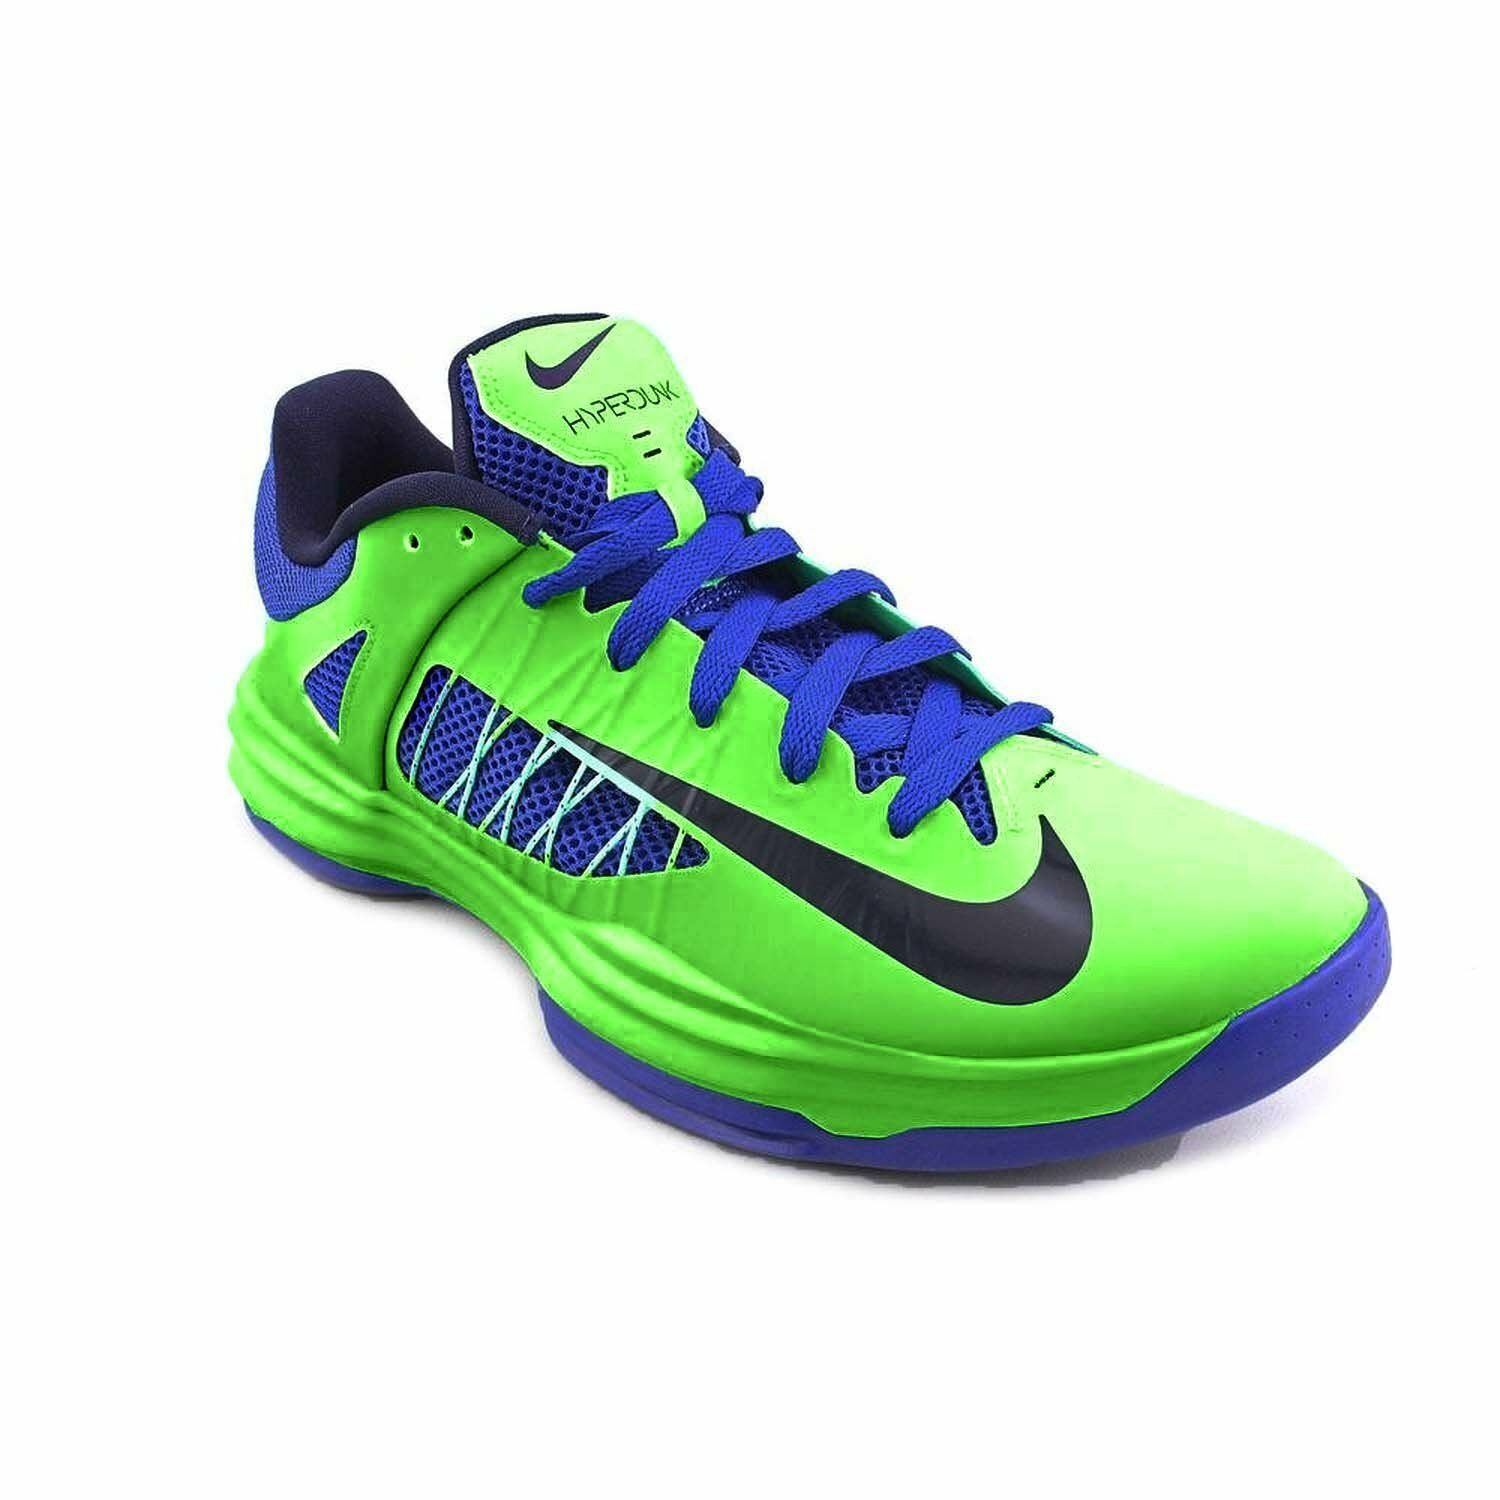 Nike Men's Hyperdunk Low Basketball Shoes Comfortable Comfortable and good-looking